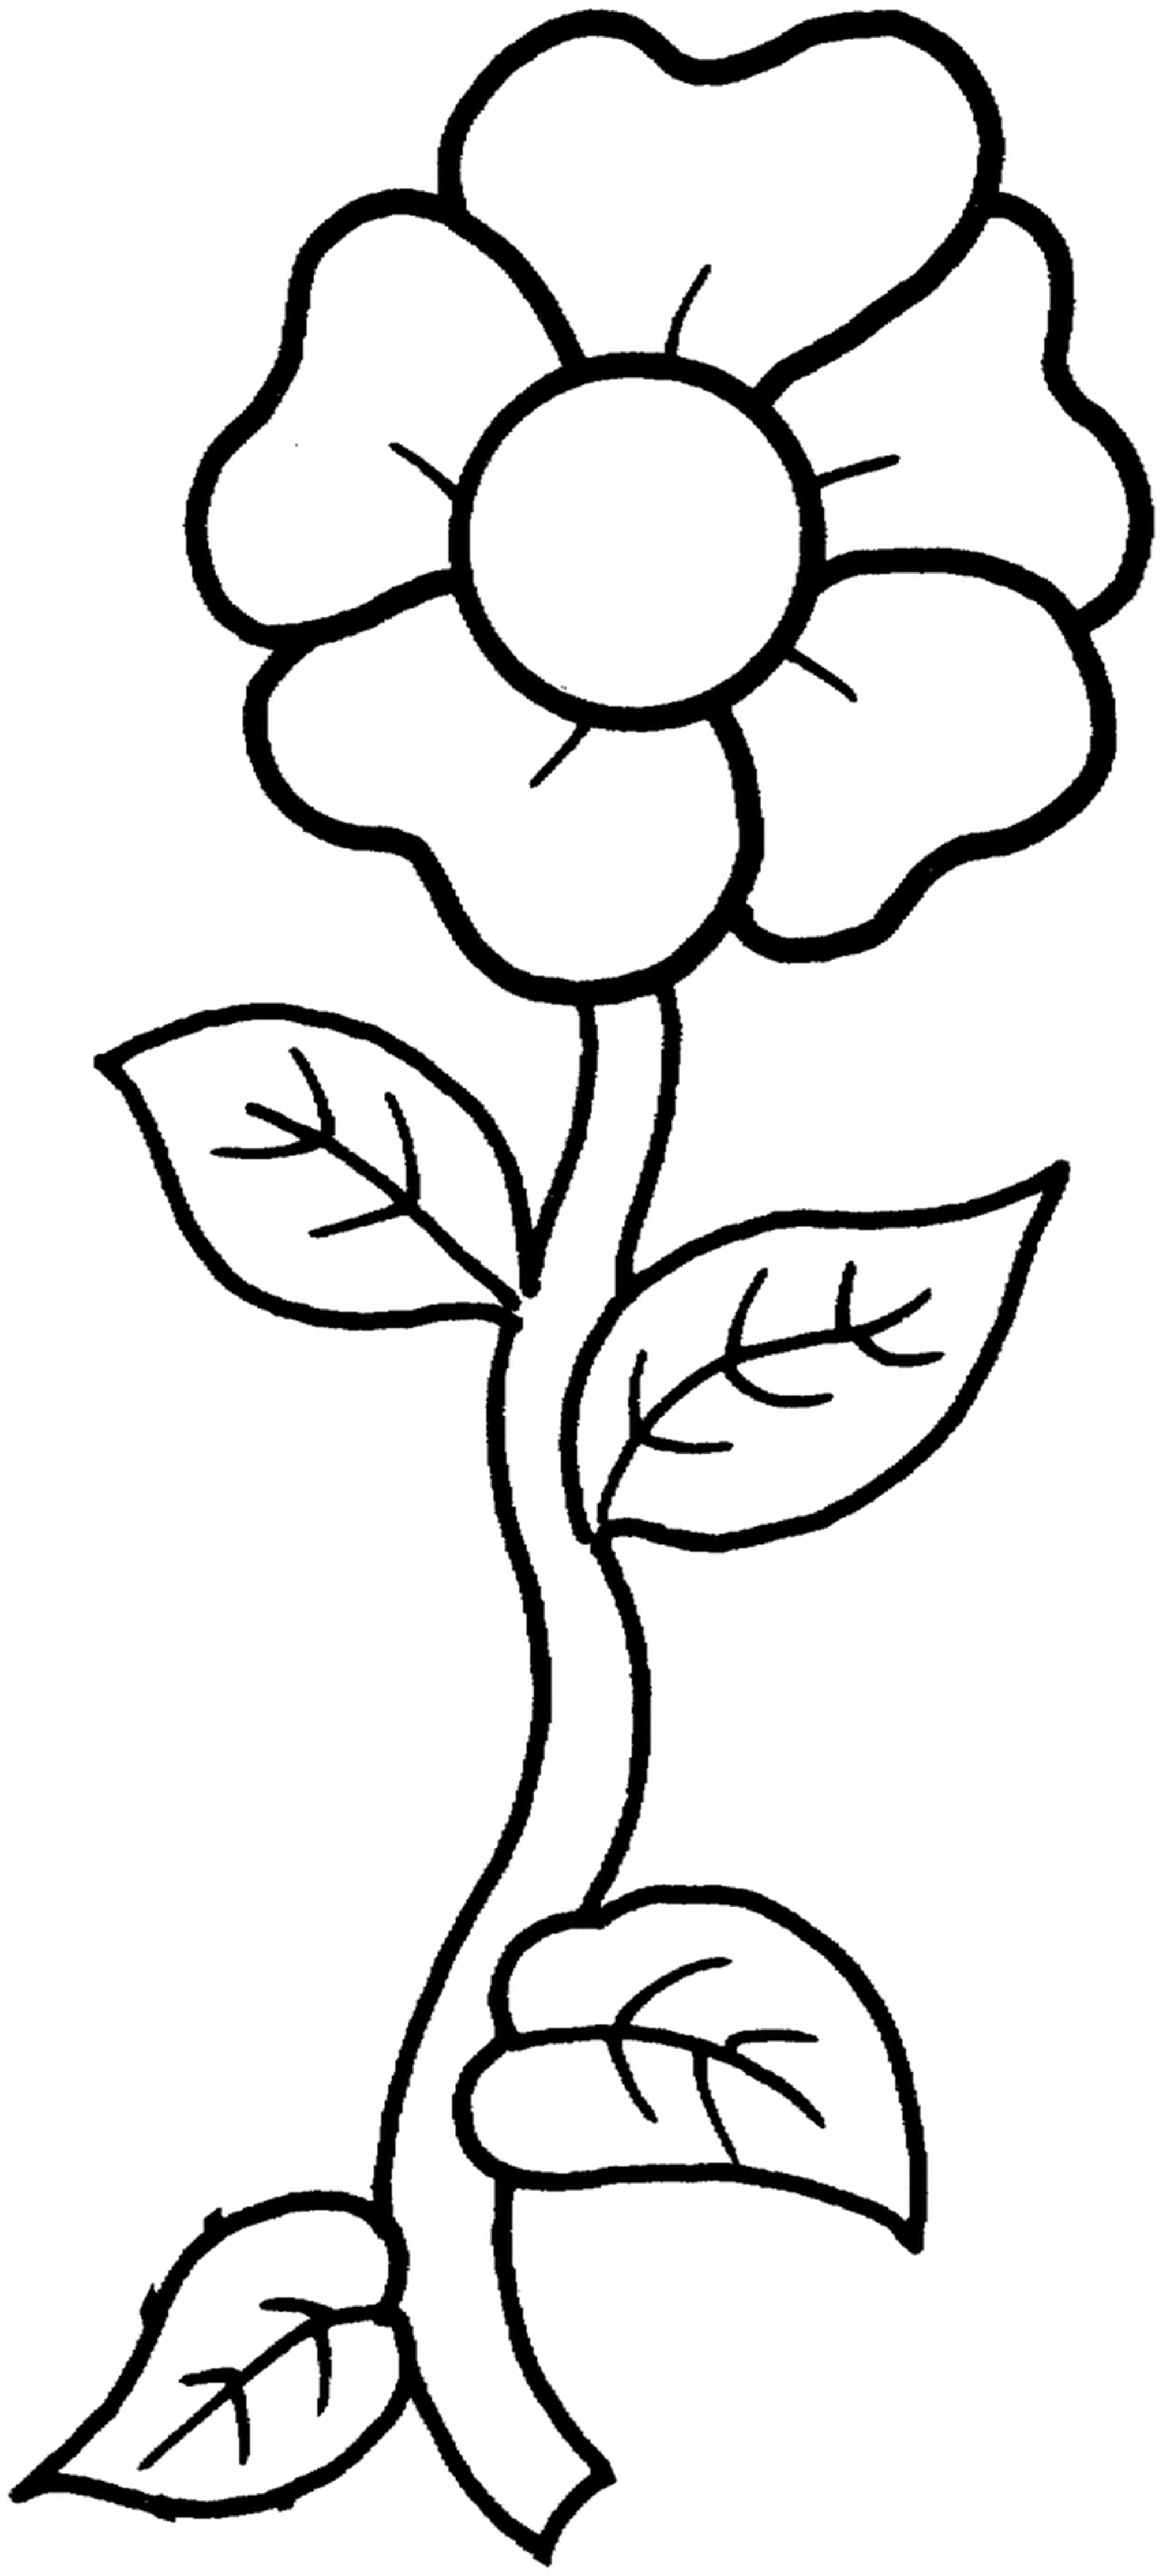 flower coloring pages free printable free printable flower coloring pages for kids cool2bkids printable flower pages coloring free